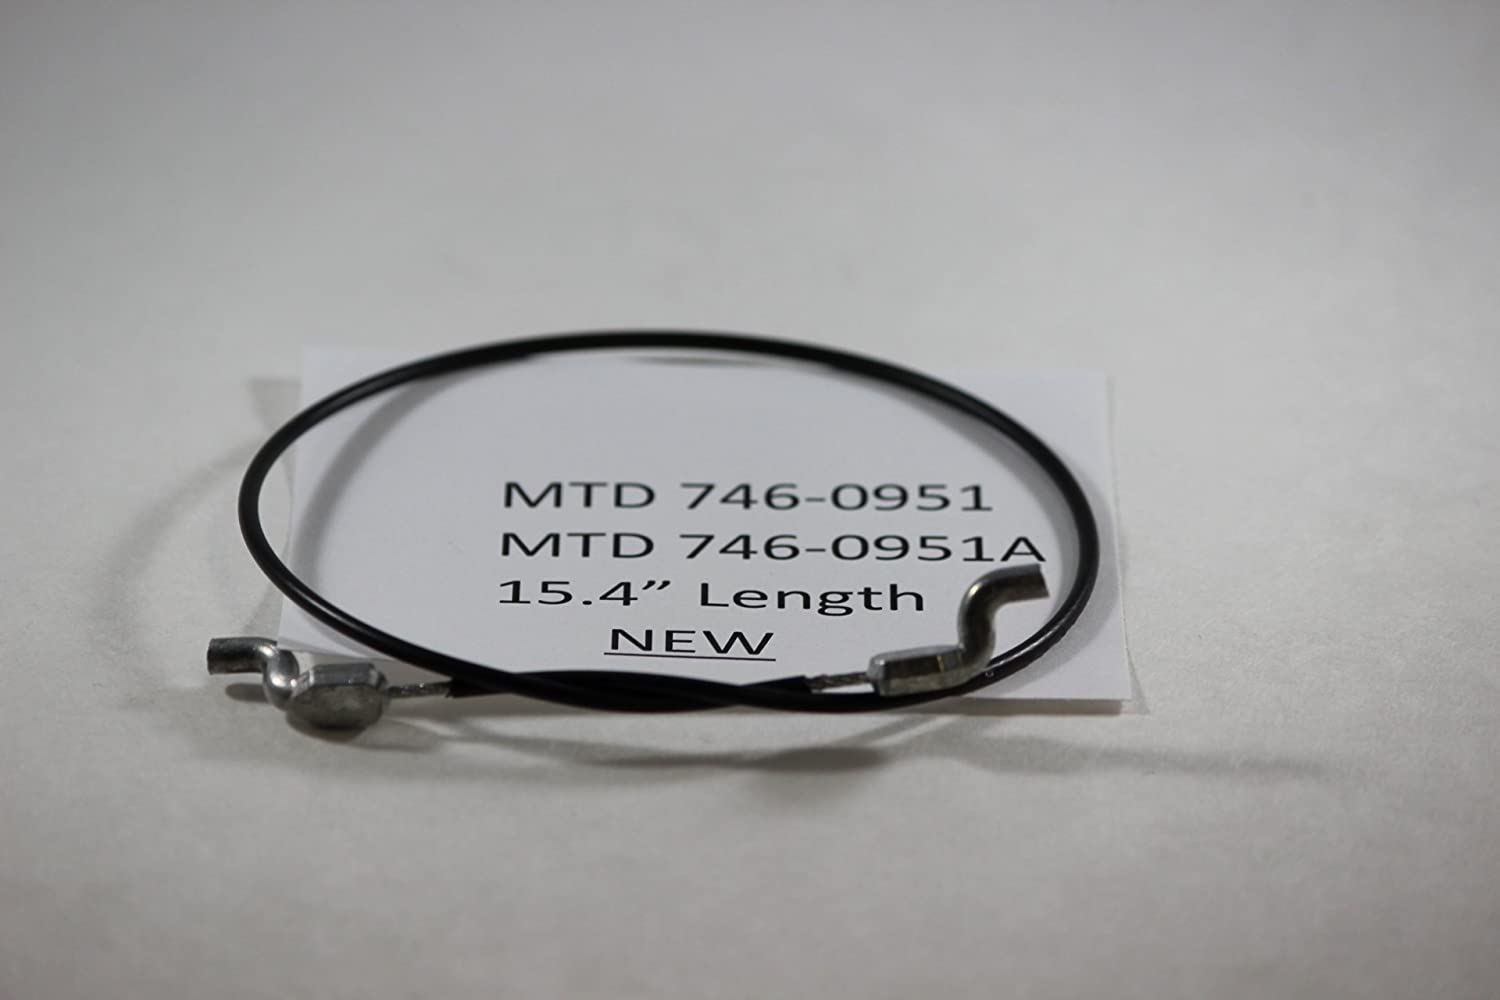 946-0951A 5641 Idler Auger Cable Replaces Mtd 746-0951A 746-0951